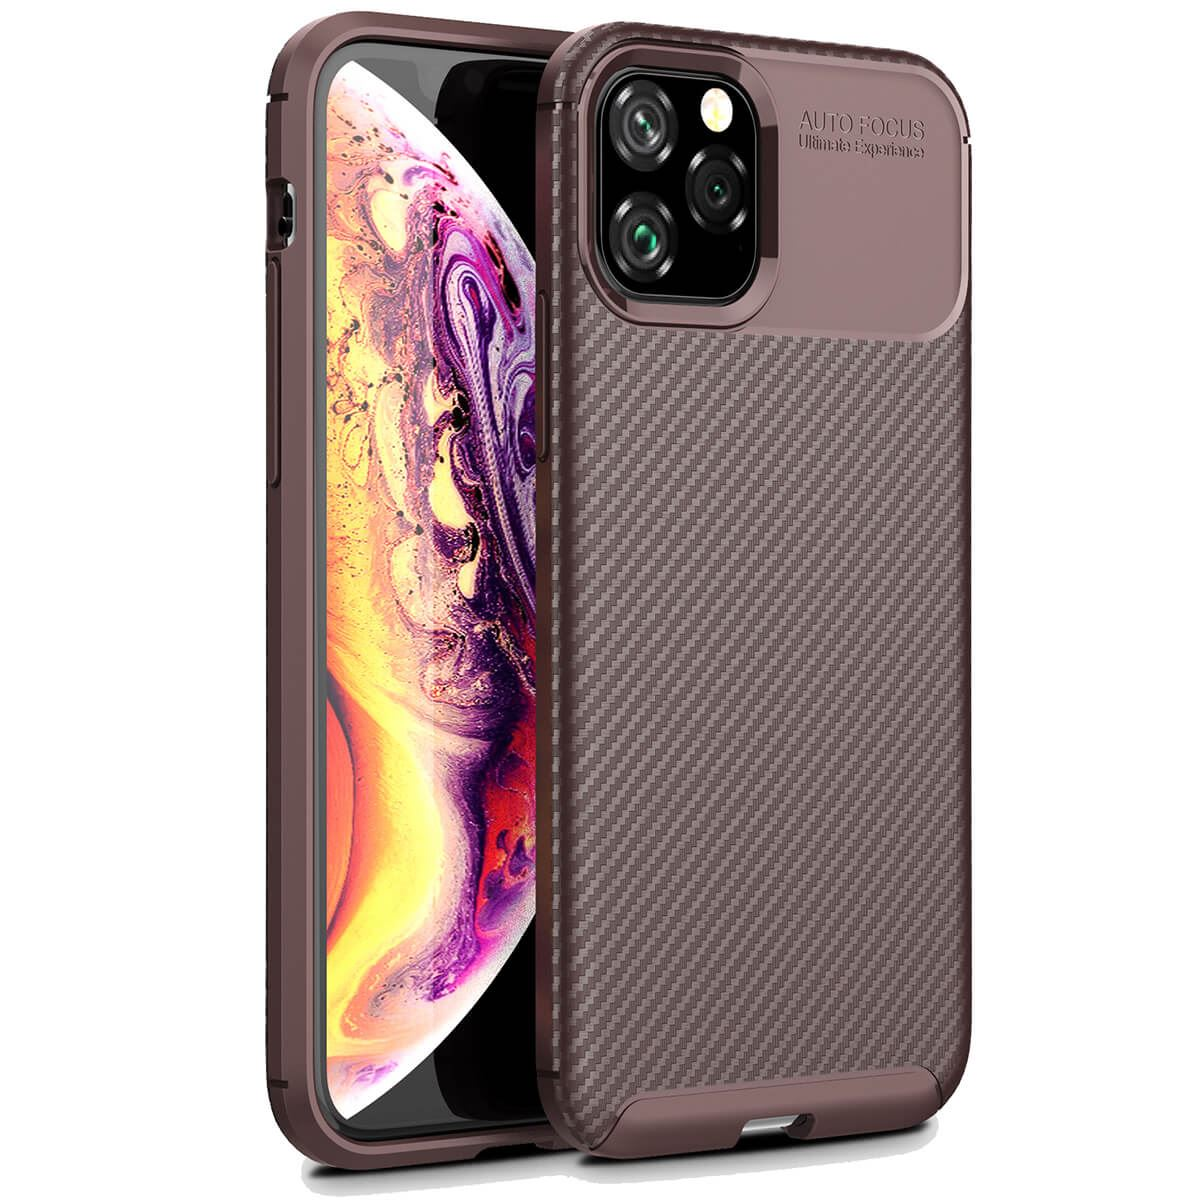 Carbon-Fibre-Soft-Case-For-iPhone-11-X-XR-Max-8-7-6-Plus-Slim-TPU-Silicone-Cover thumbnail 18